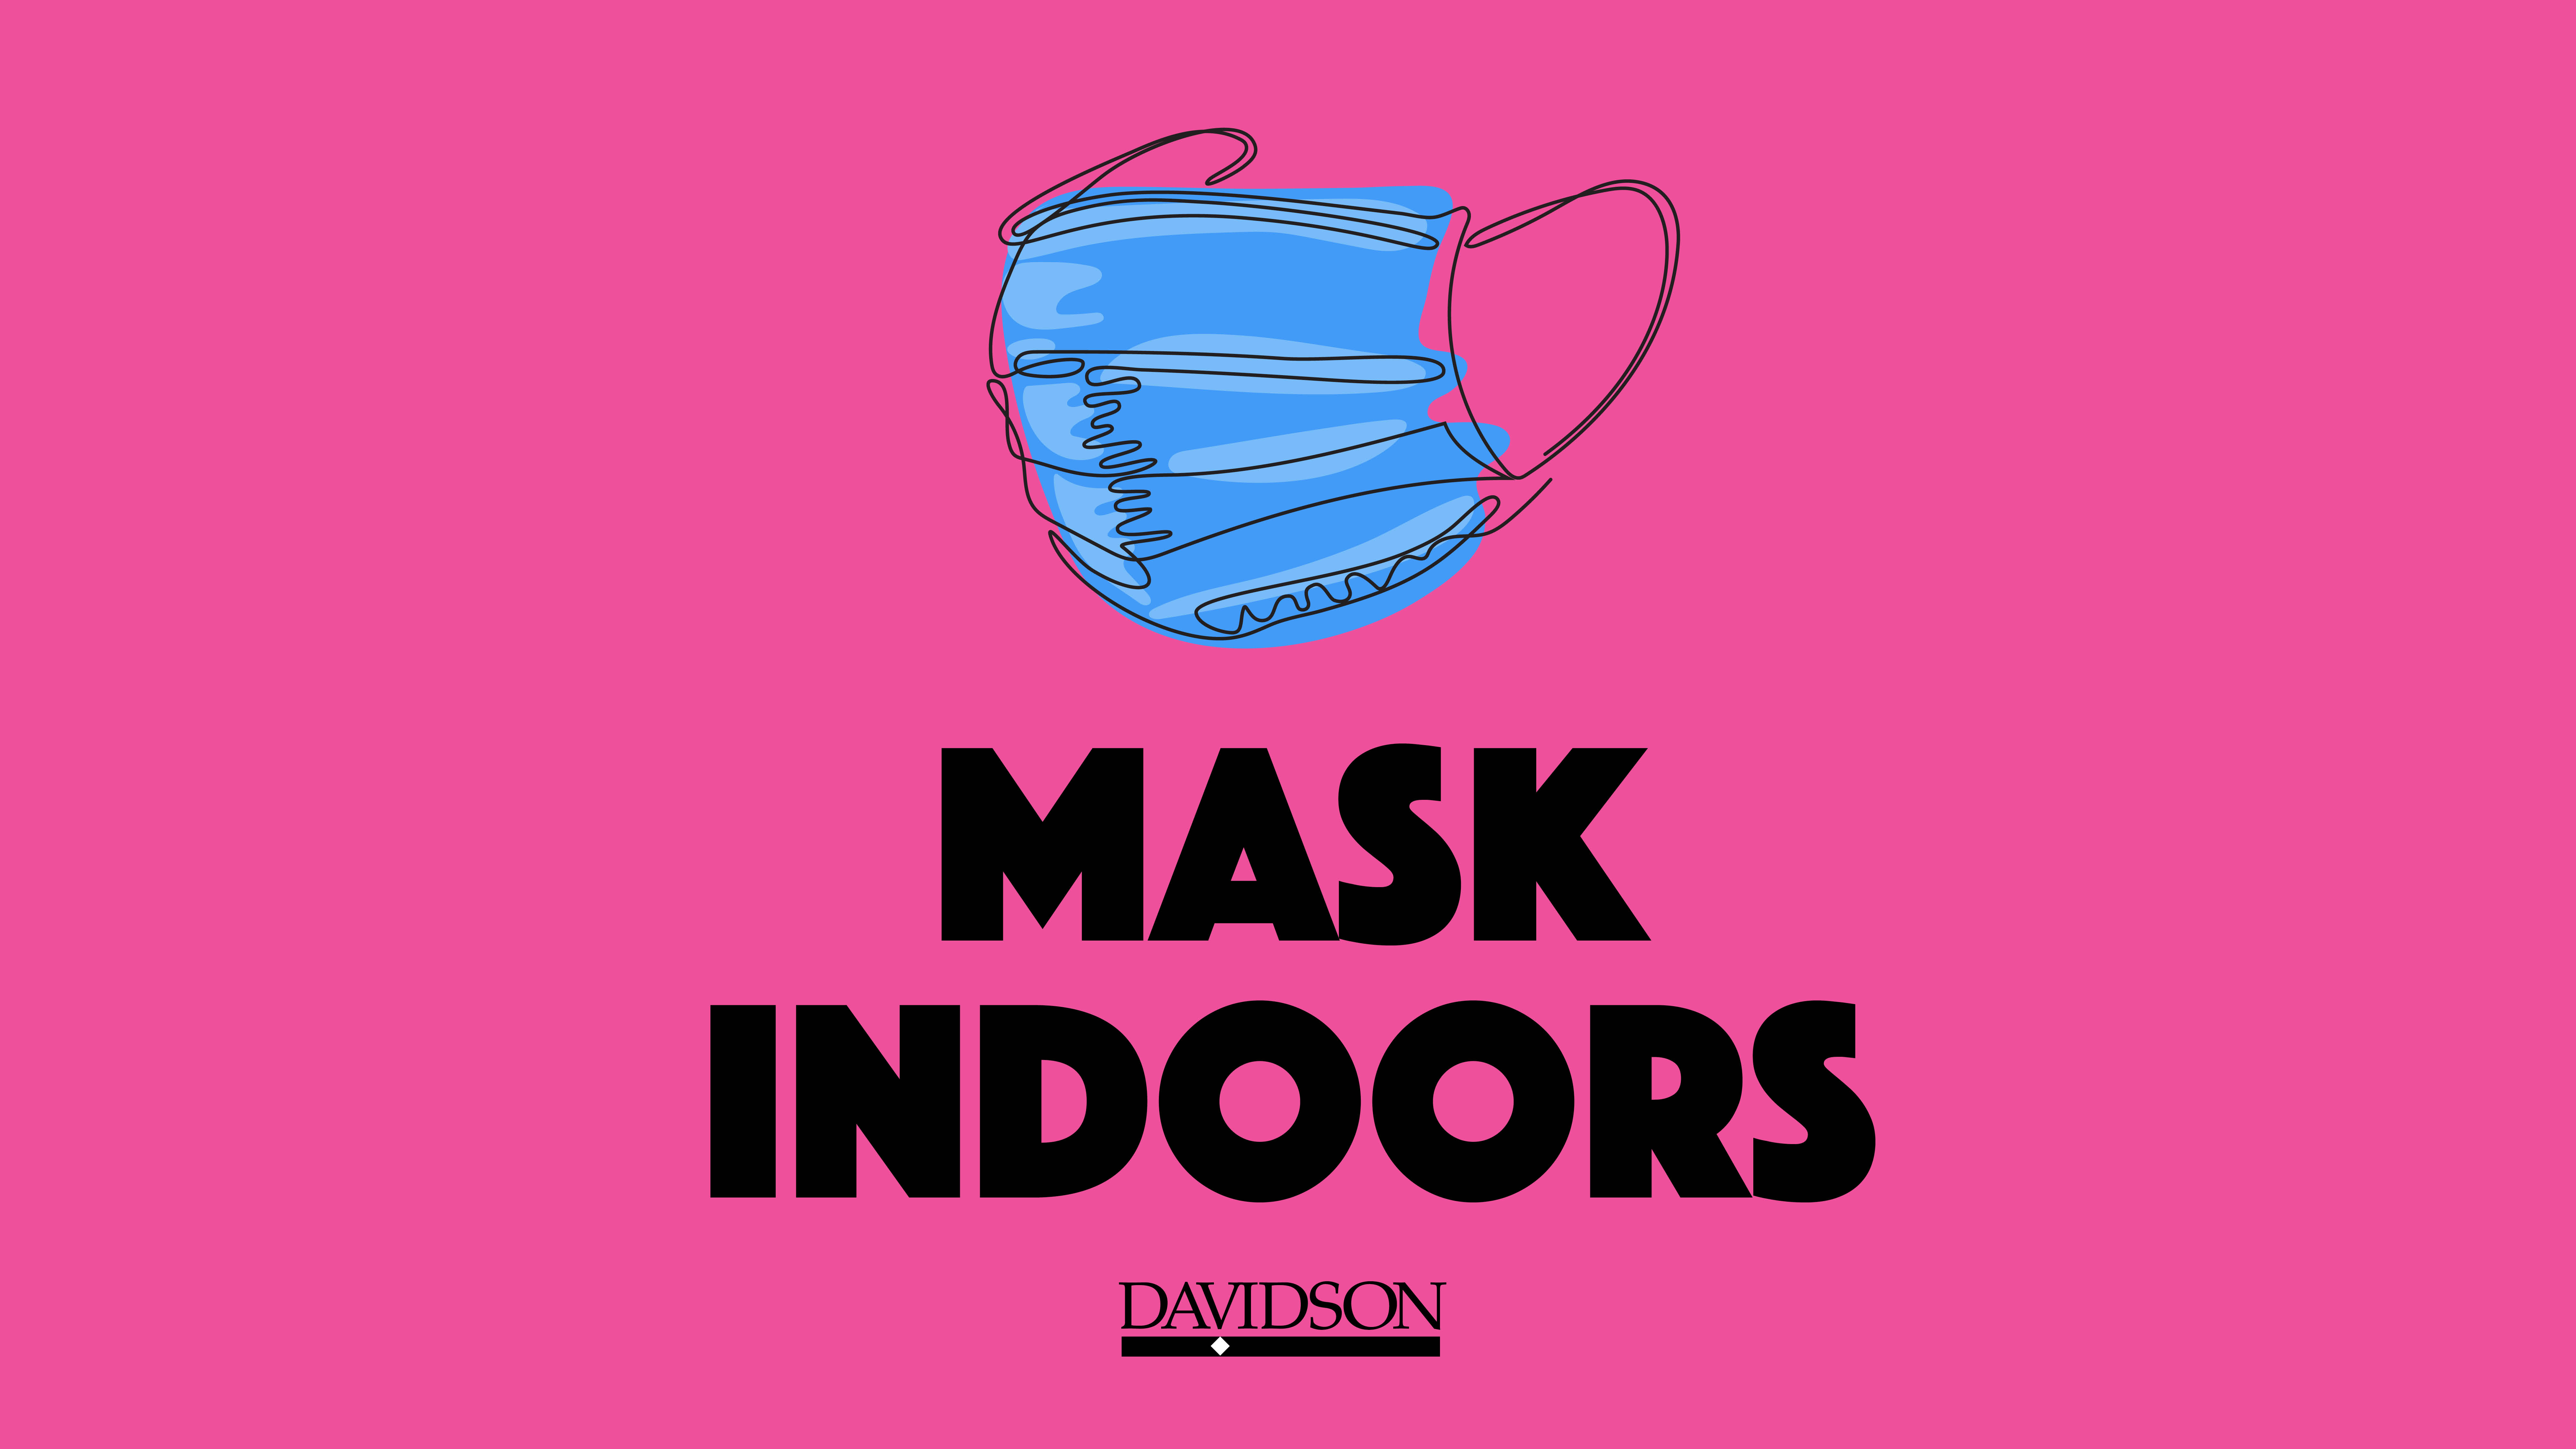 Mask outline with Mask Indoors text